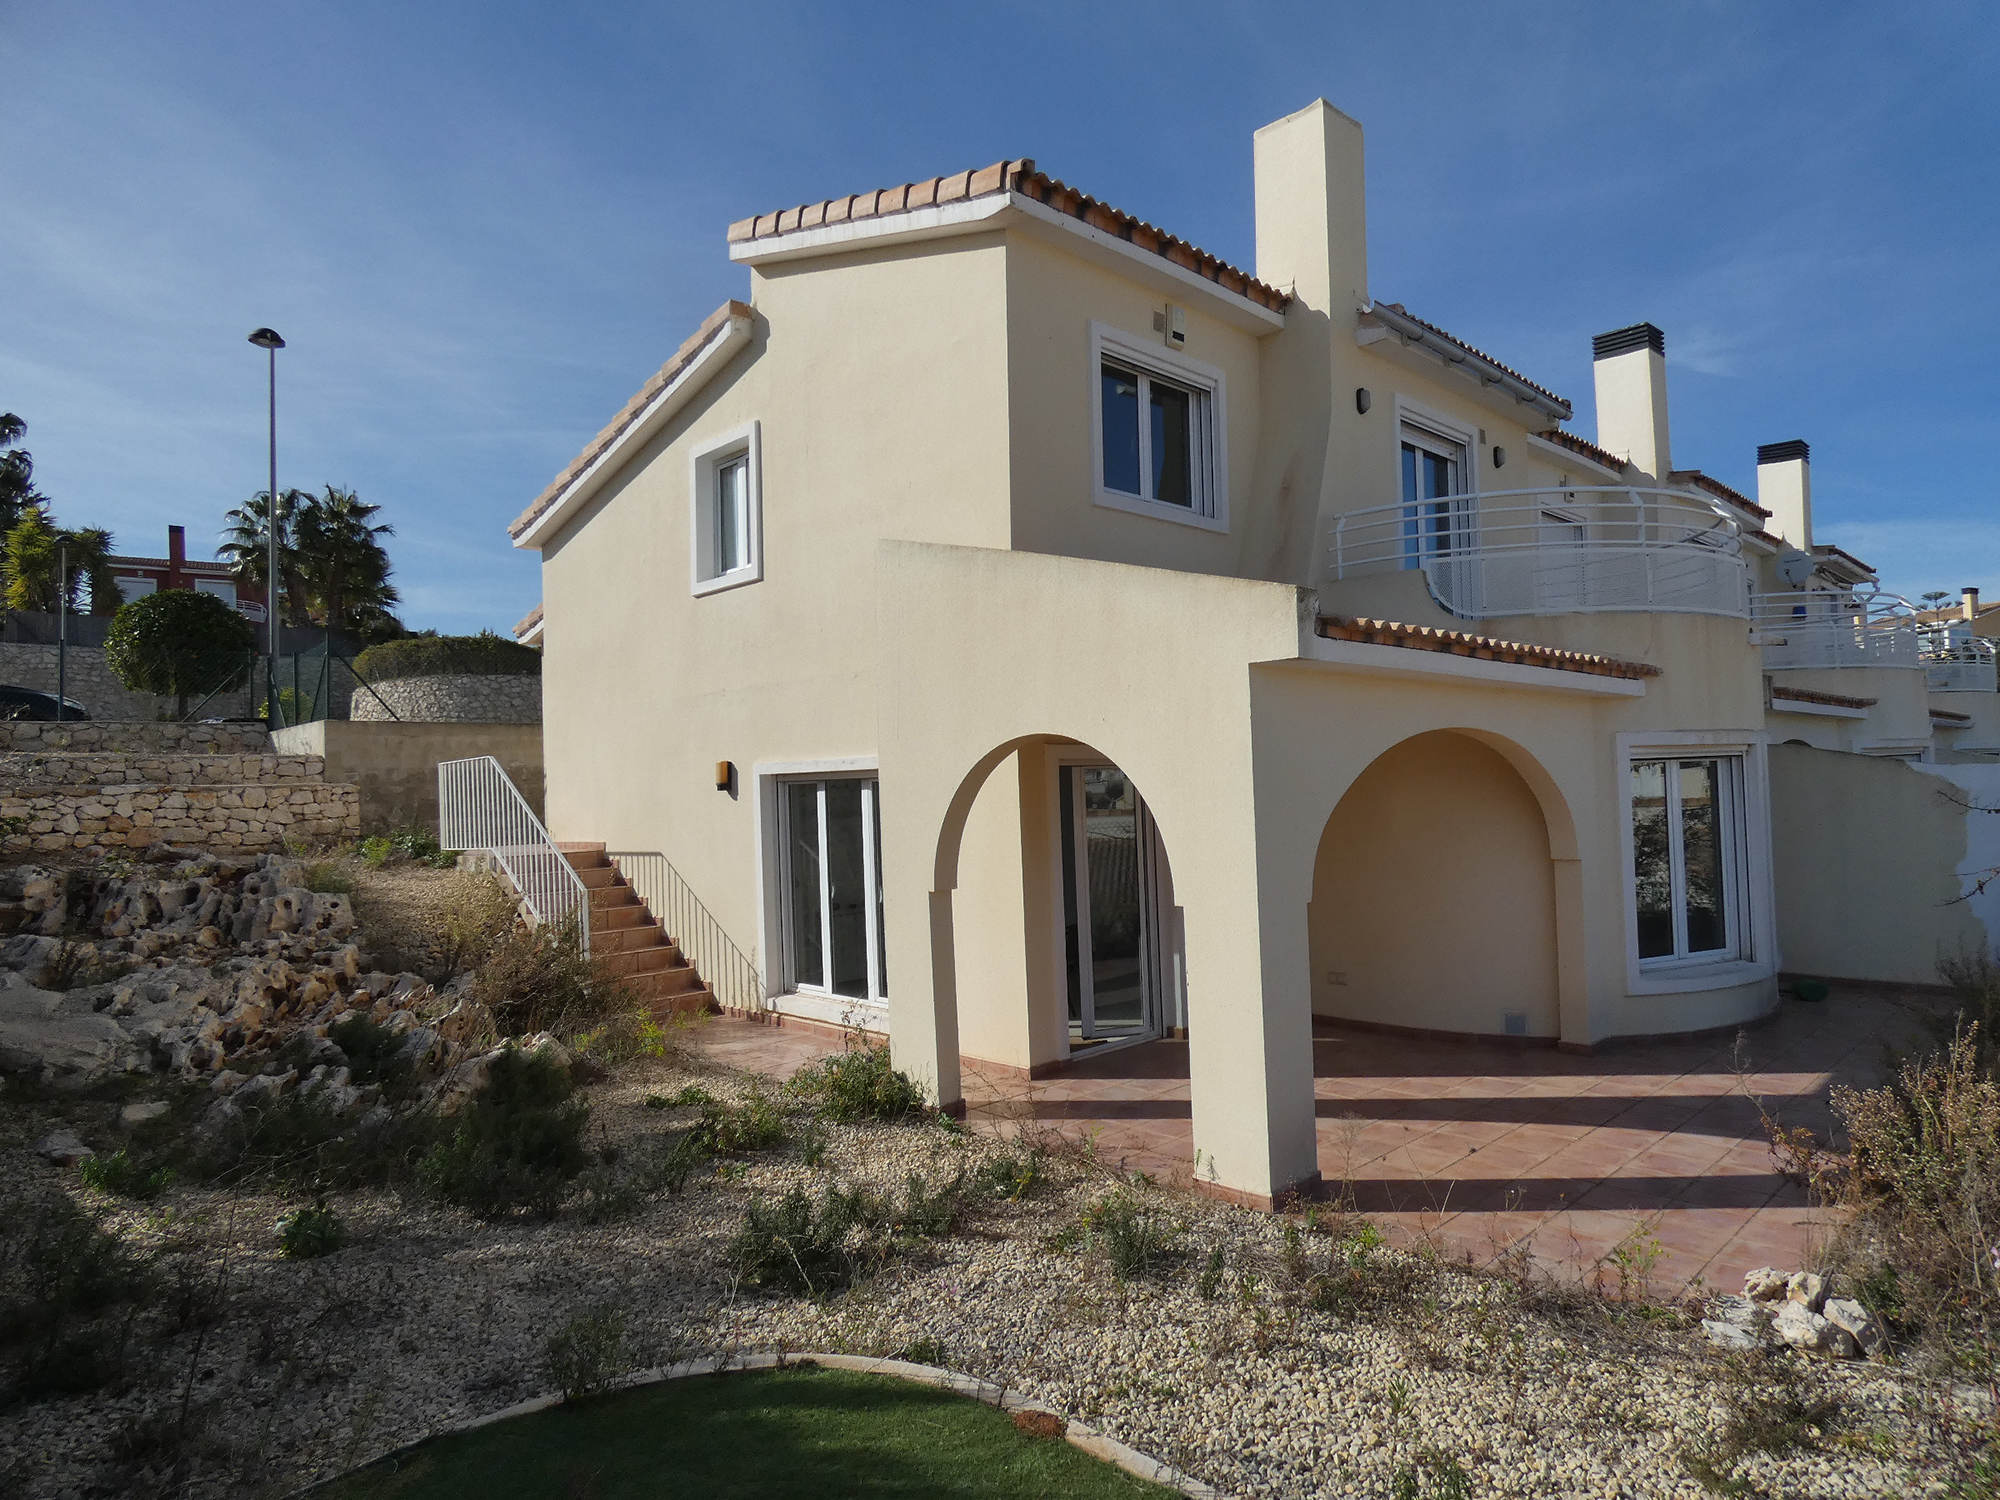 Villa with Sea Views in Gata Residential